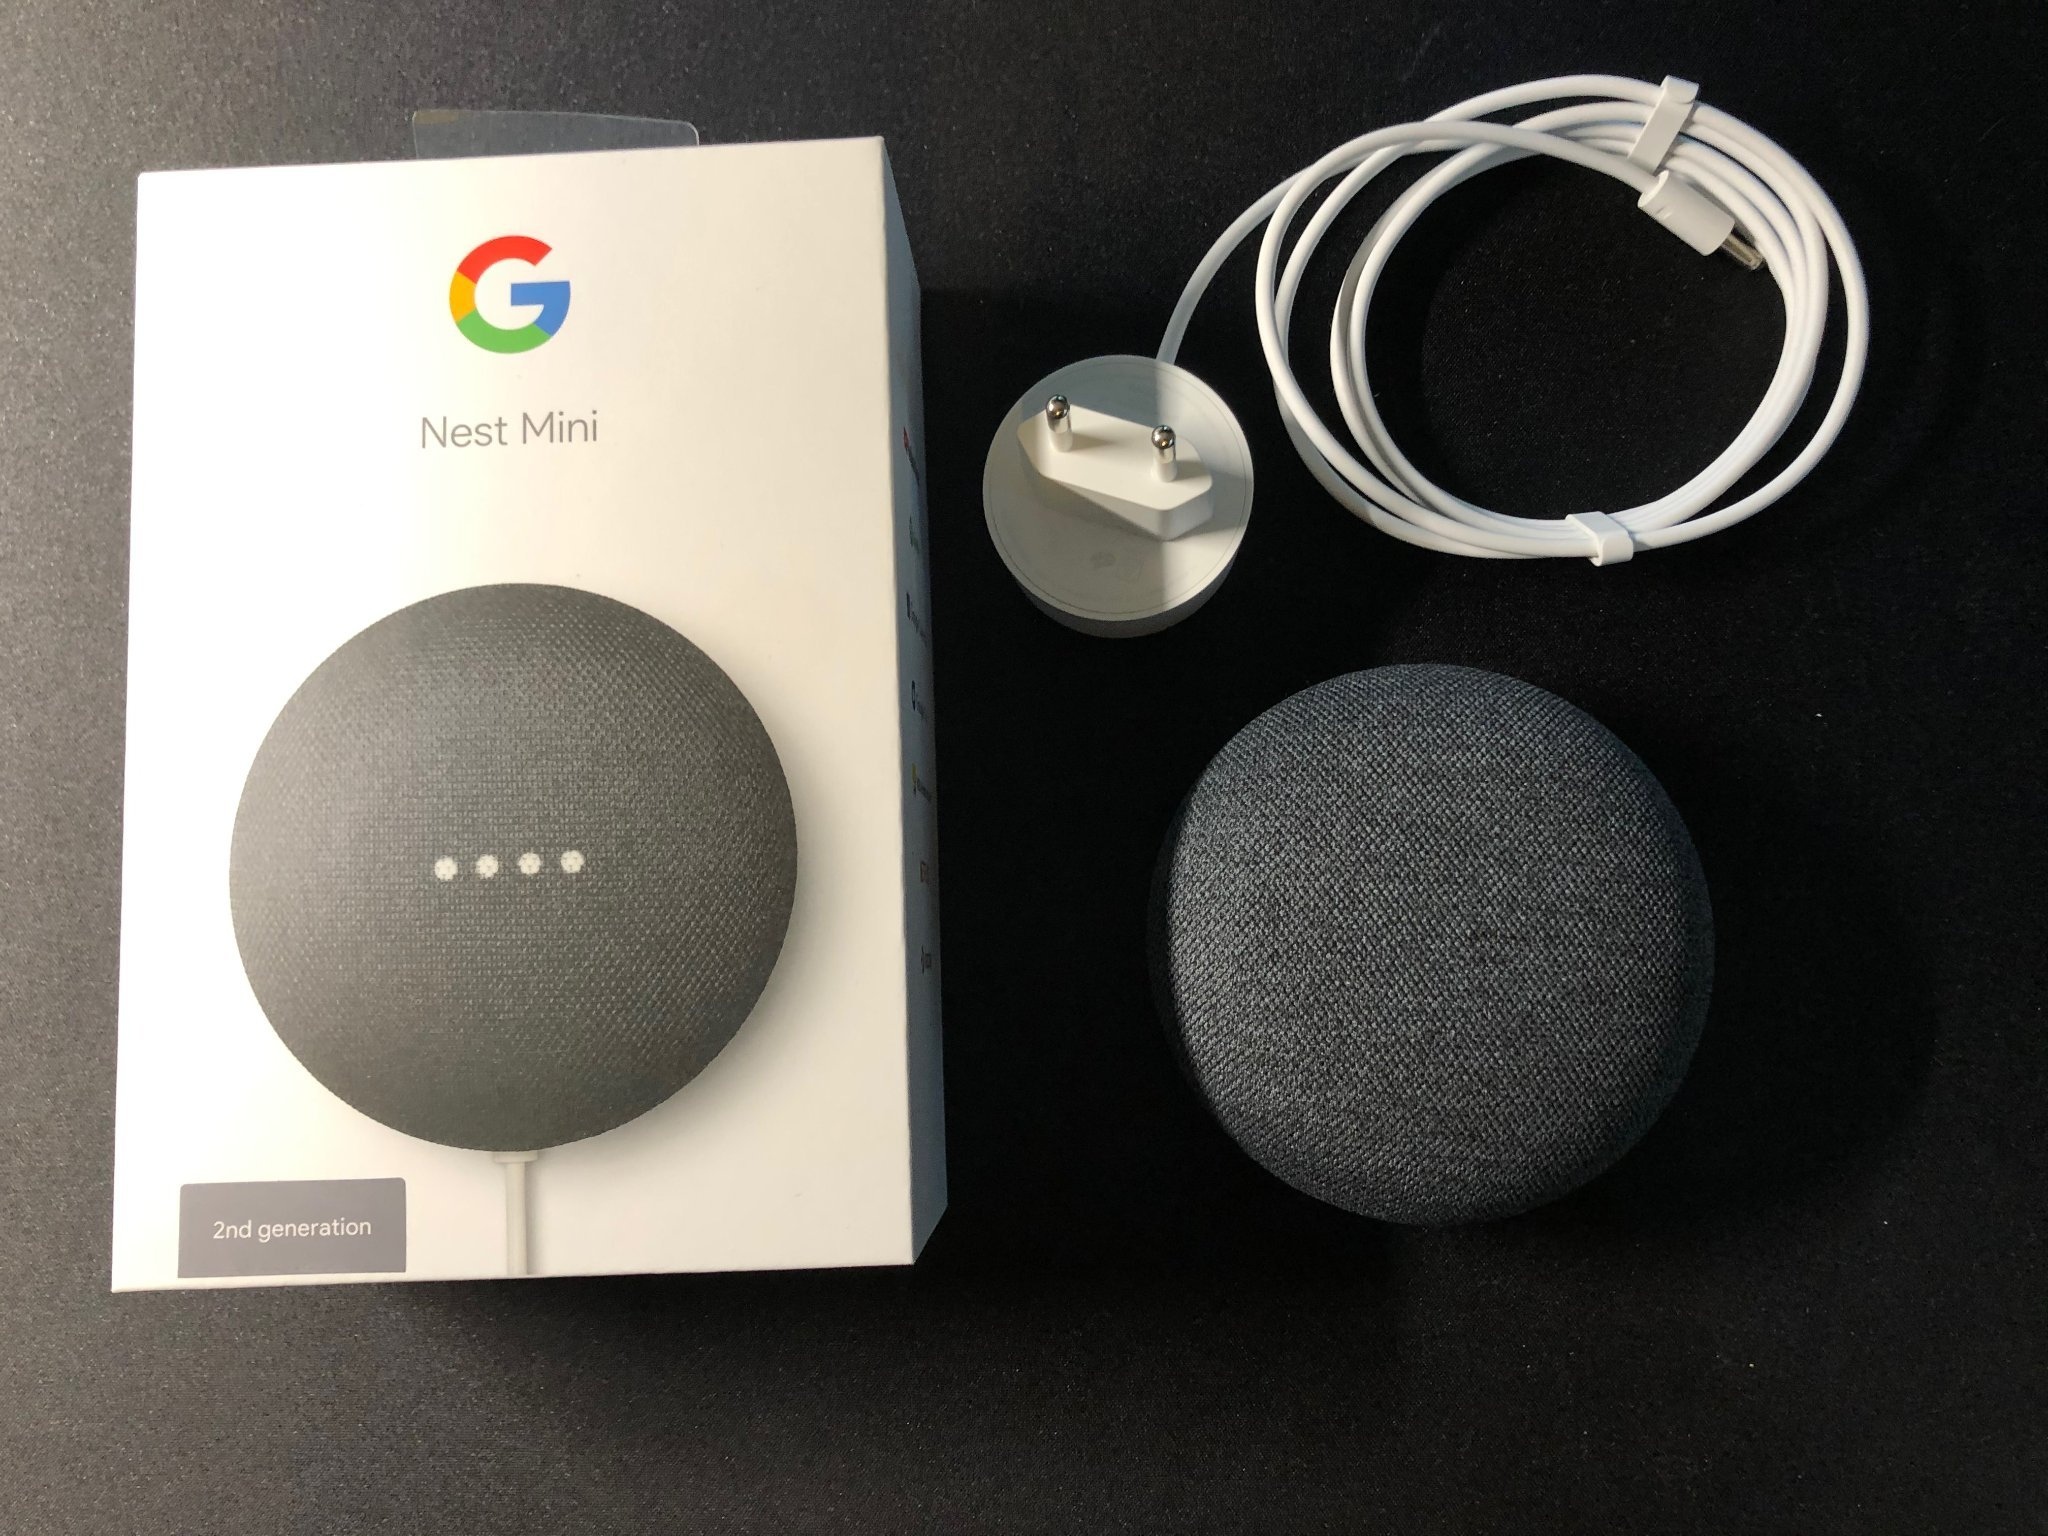 Google Nest Mini Svart Charcoal